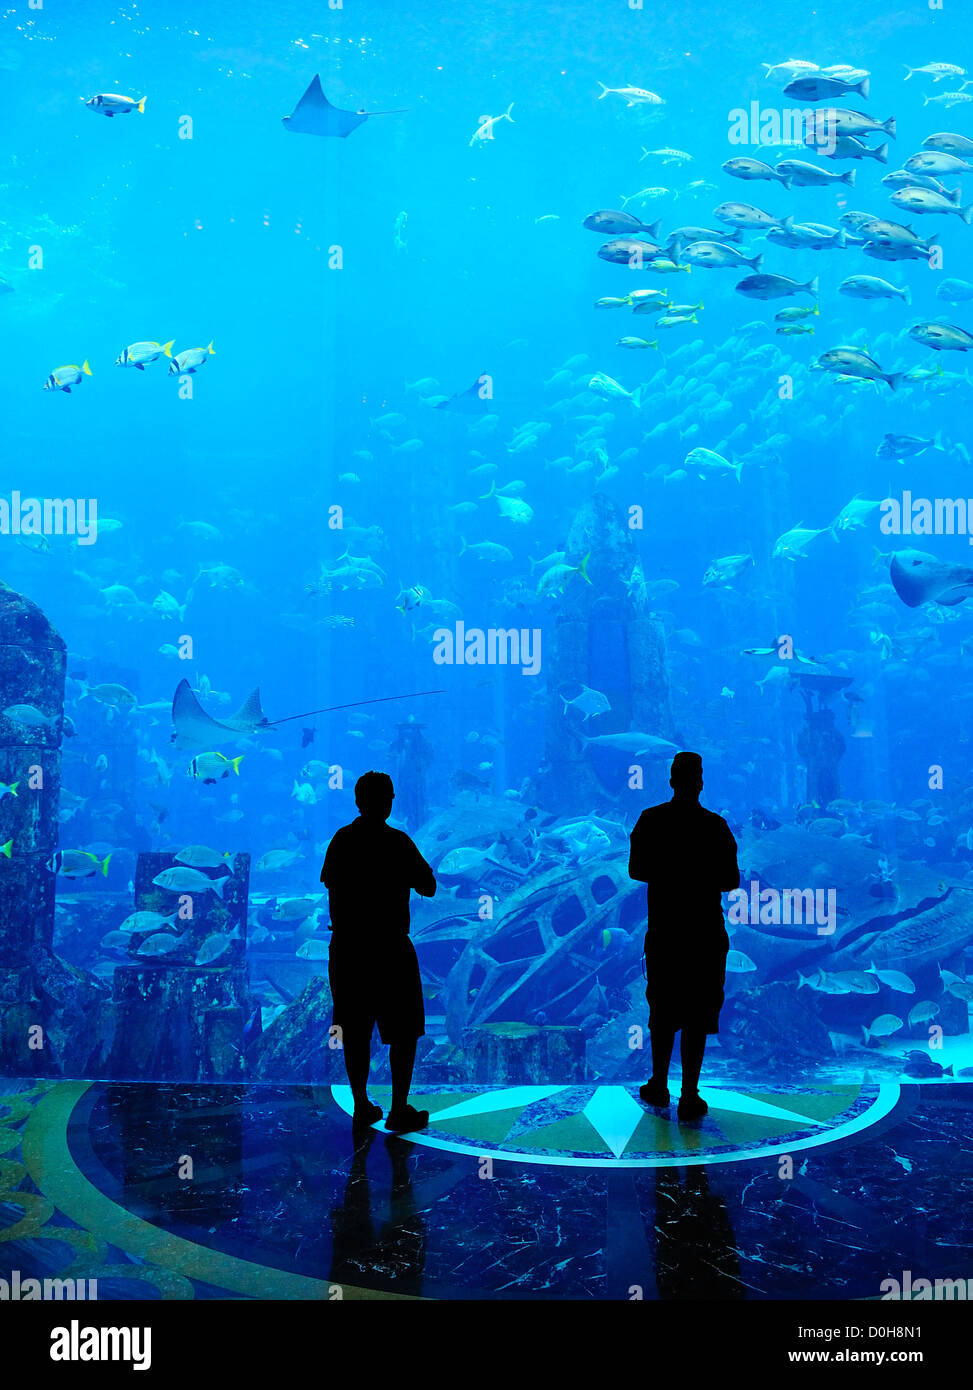 Large Aquarium - People Silhouette looking at the amazing fish - Stock Image